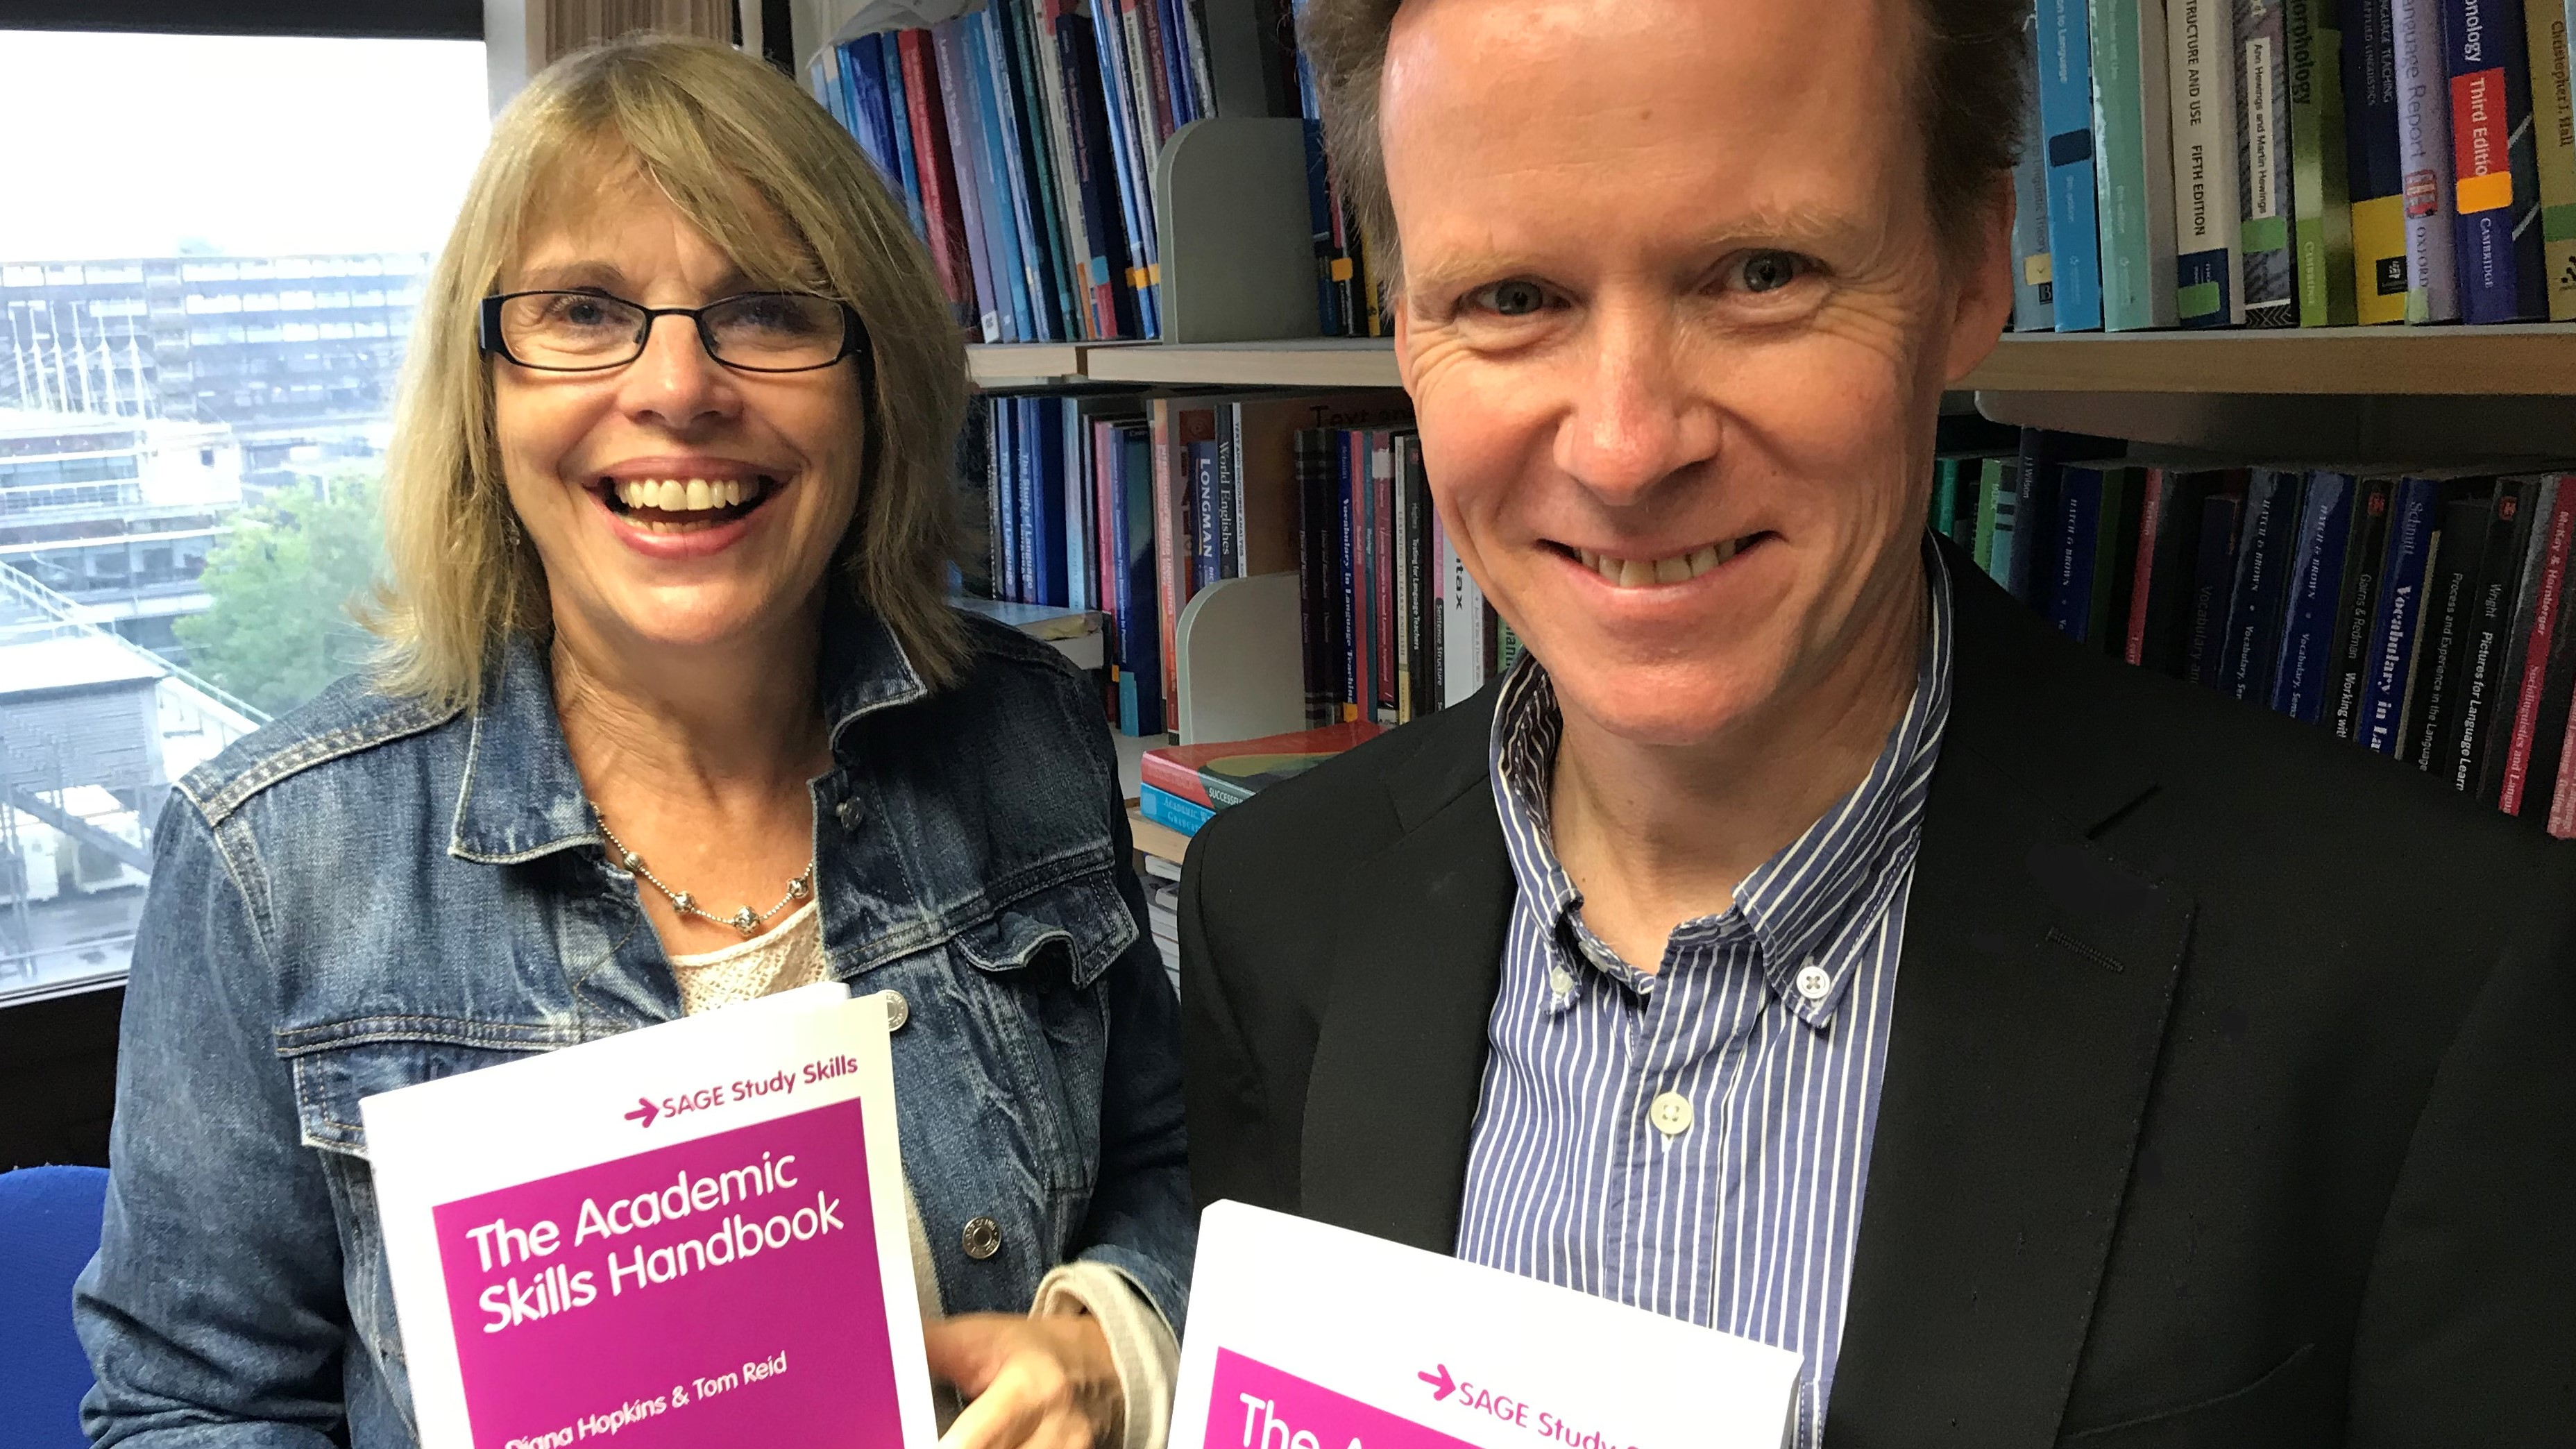 Diana Hopkins and Tom Reid holding copies of The Academic Skills Handbook